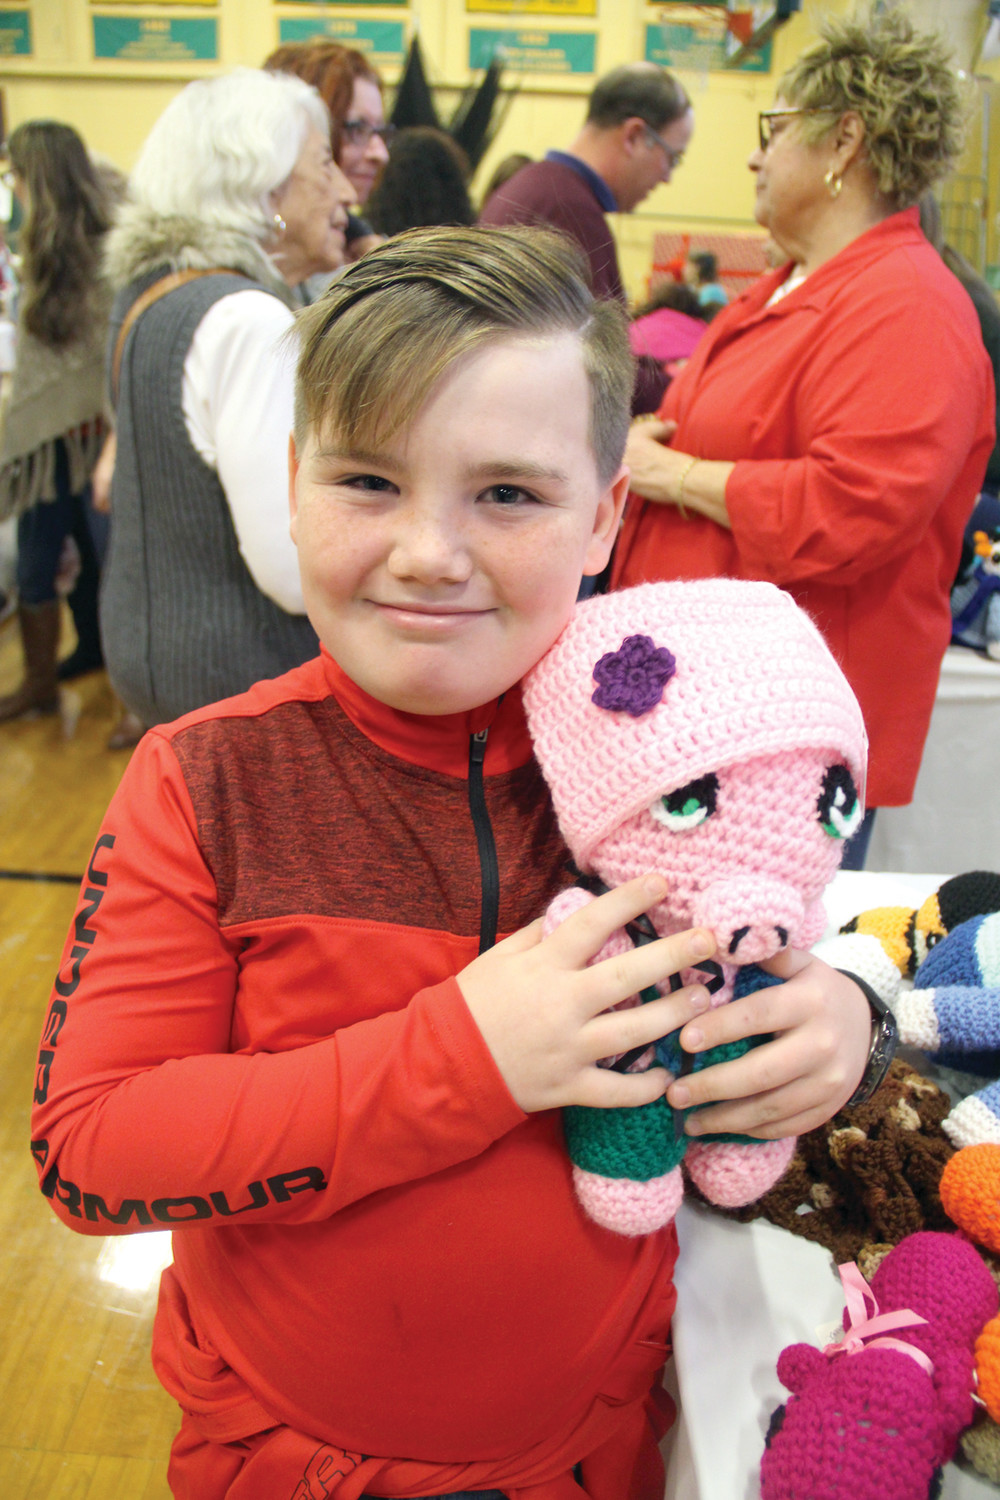 EARLY SHOPPING: Dylan Maddalena picked out a knit pink hat for his baby cousin. He tried it out on a stuffed pink pig to see if it might fit.